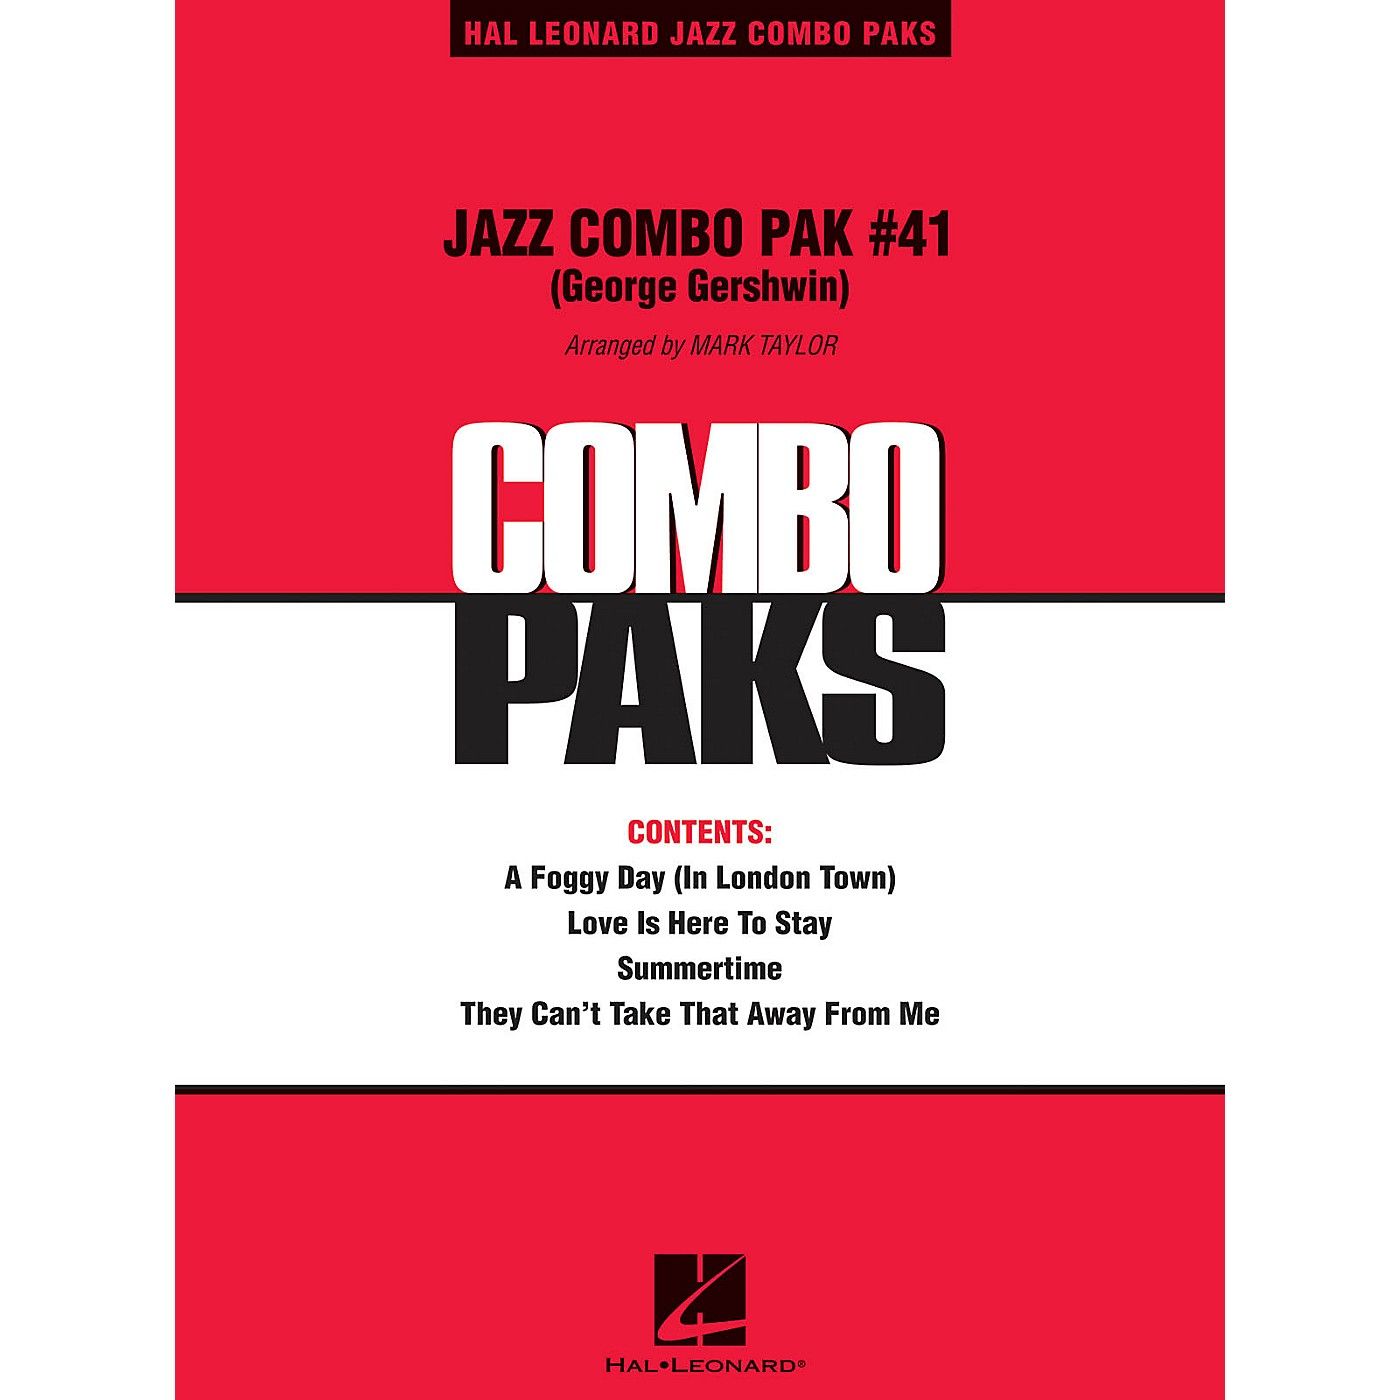 Hal Leonard Jazz Combo Pak #41 (George Gershwin) (with audio download) Jazz Band Level 3 Arranged by Mark Taylor thumbnail